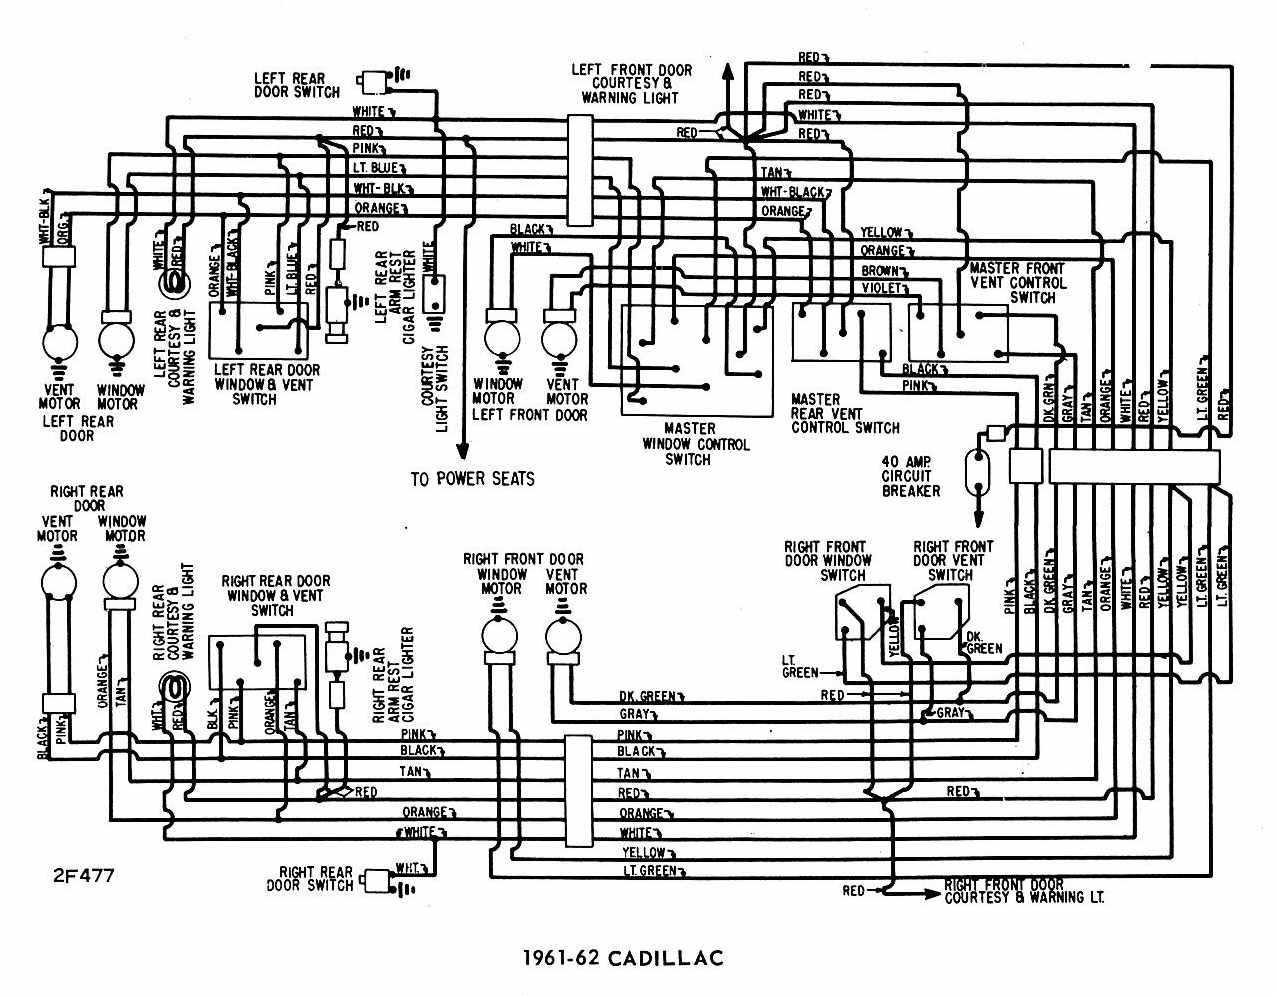 cadillac car manuals wiring diagrams pdf fault codes rh automotive manuals net 2004 Cadillac Eldorado 2002 Cadillac Eldorado